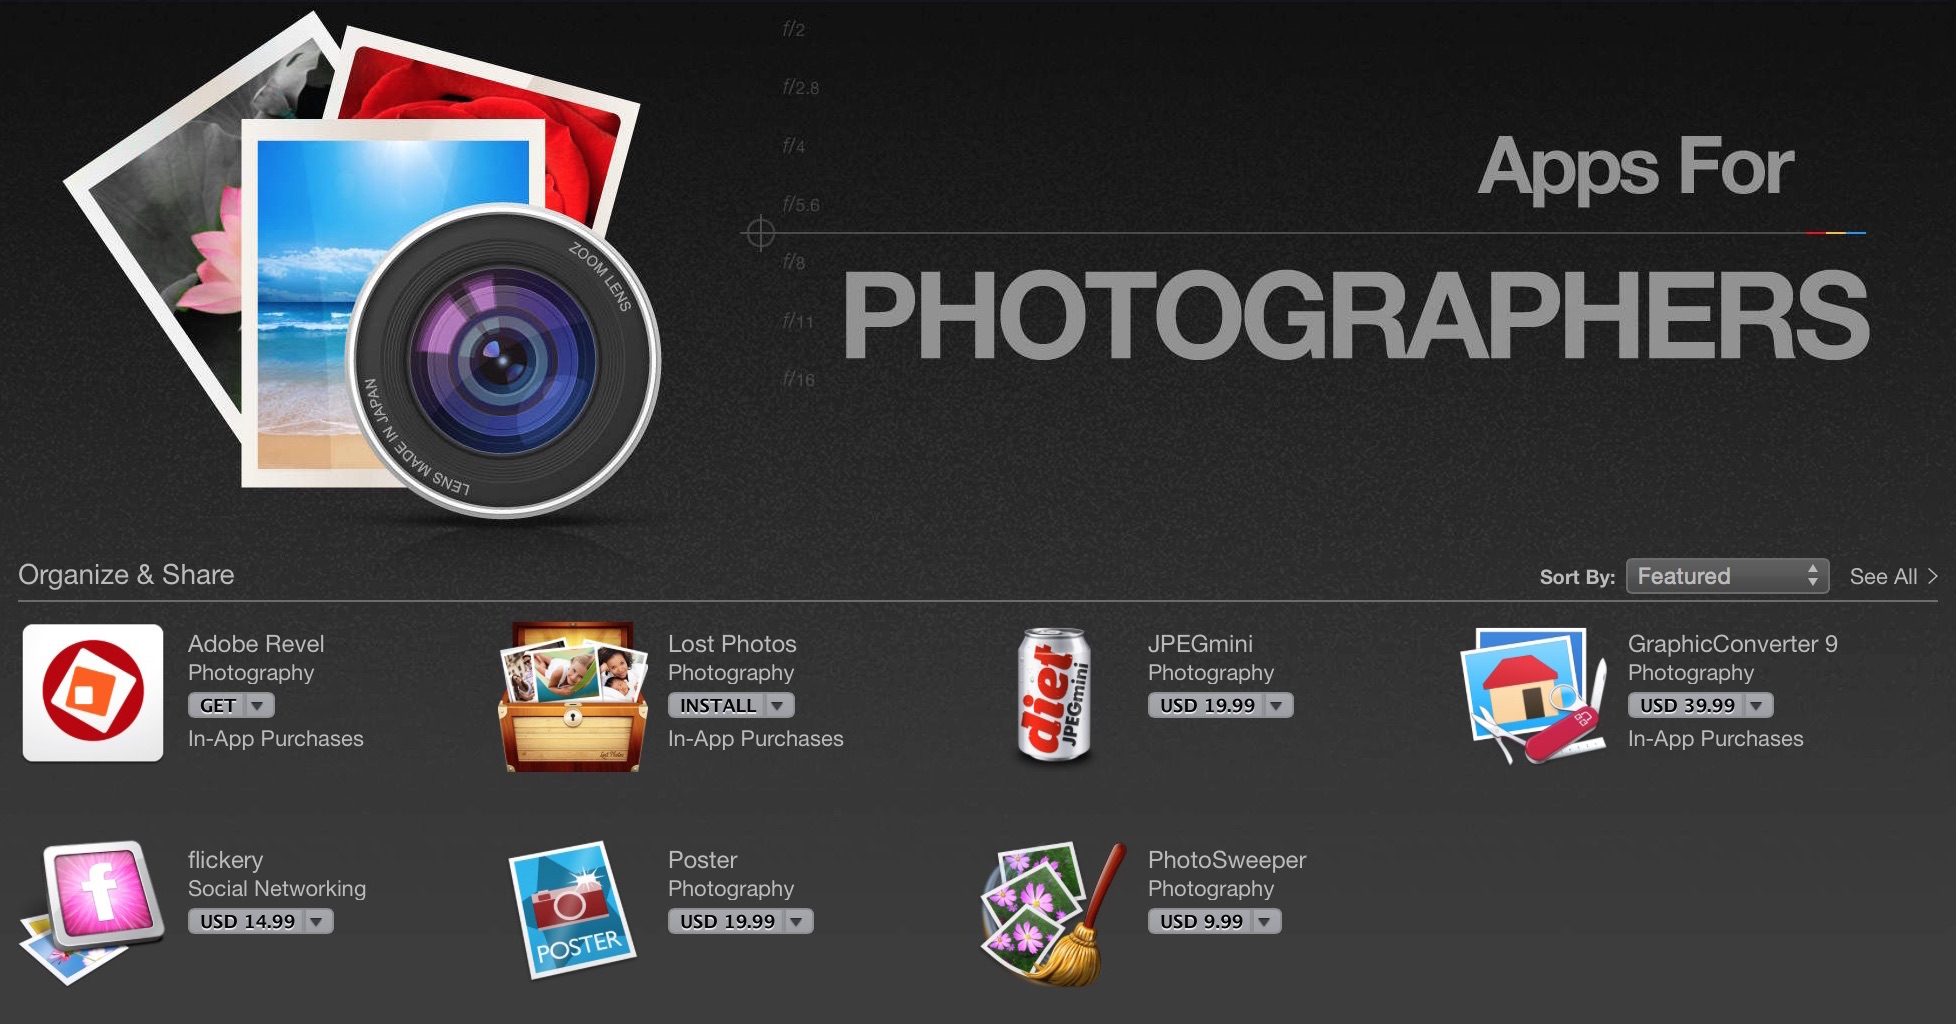 Apps for Photographers